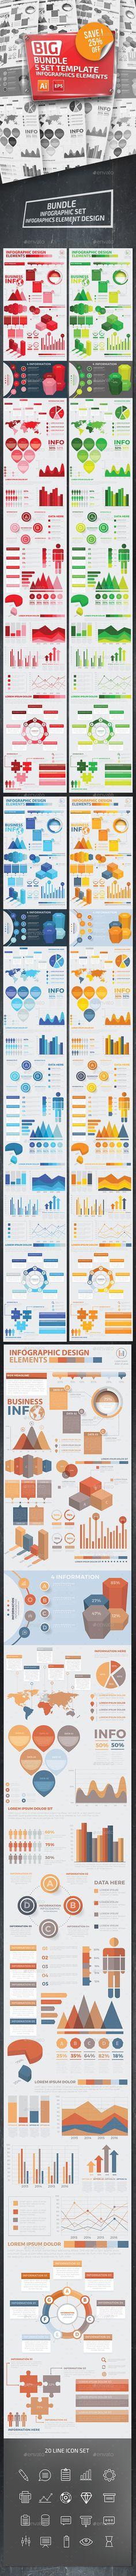 Bundle 5 Infographic Templates - #Infographics Download here:  https://graphicriver.net/item/bundle-5-infographic-templates/20357798?ref=alena994